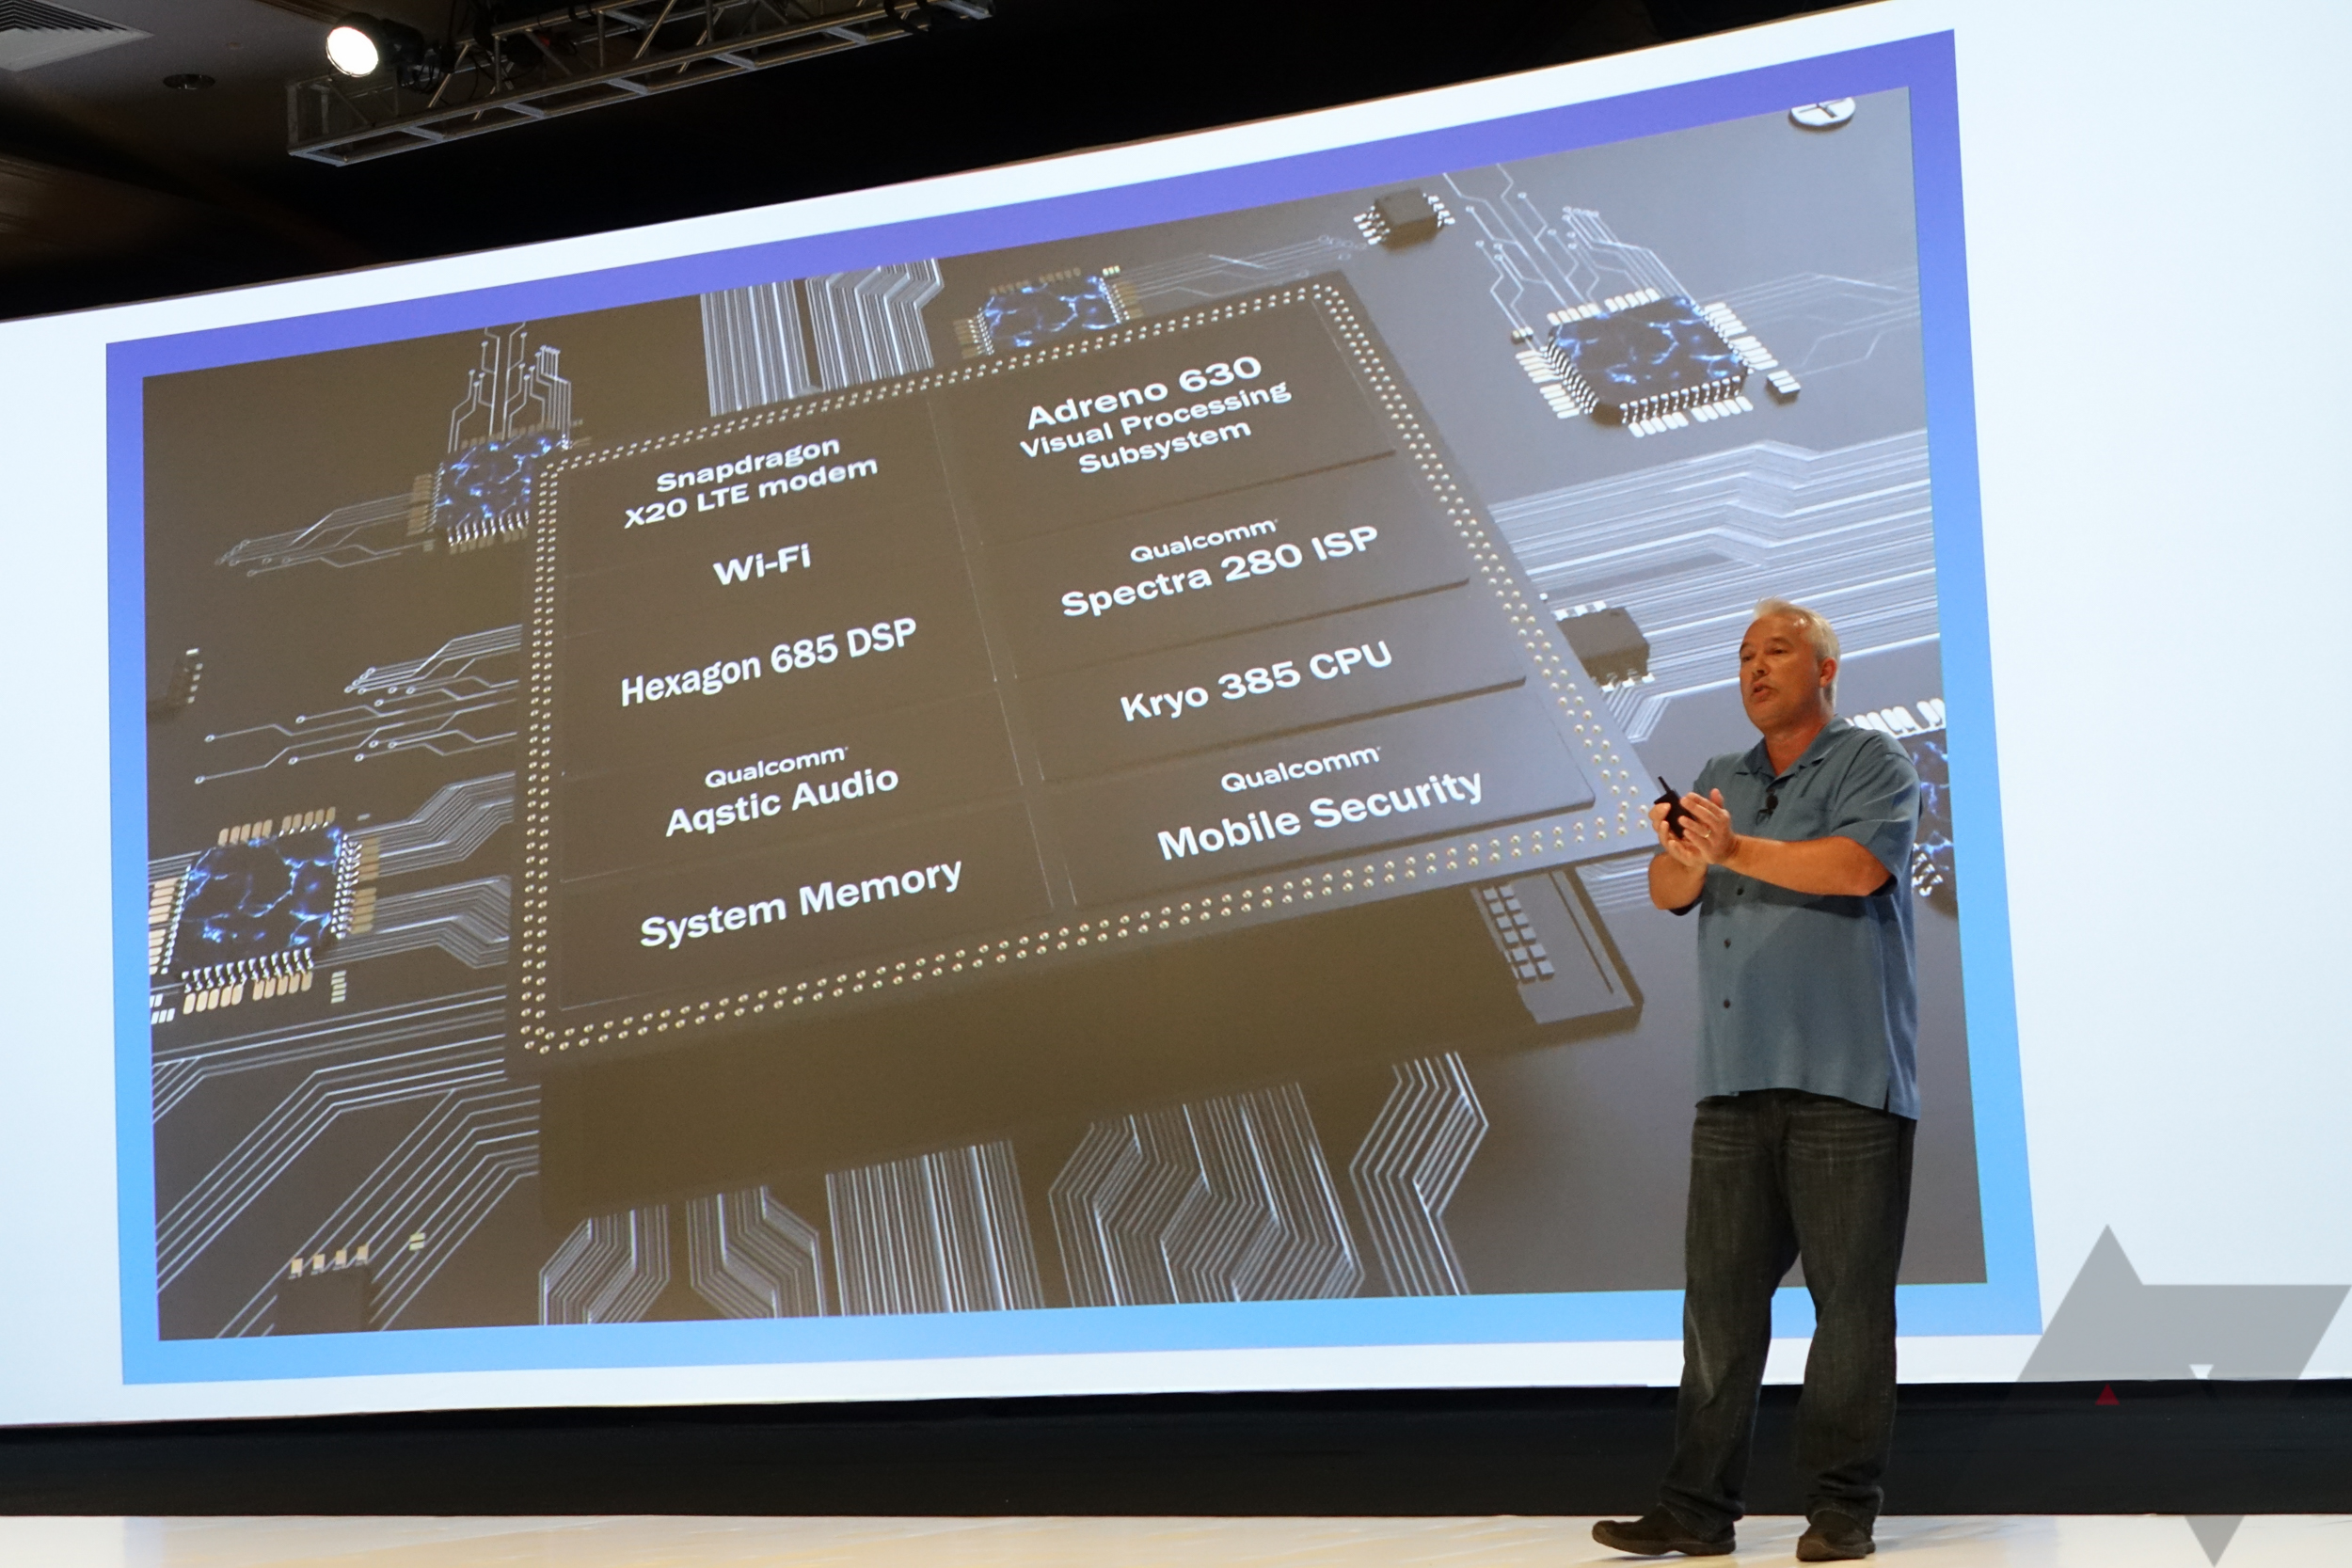 Snapdragon 845 detailed: New GPU and CPU, 30% faster